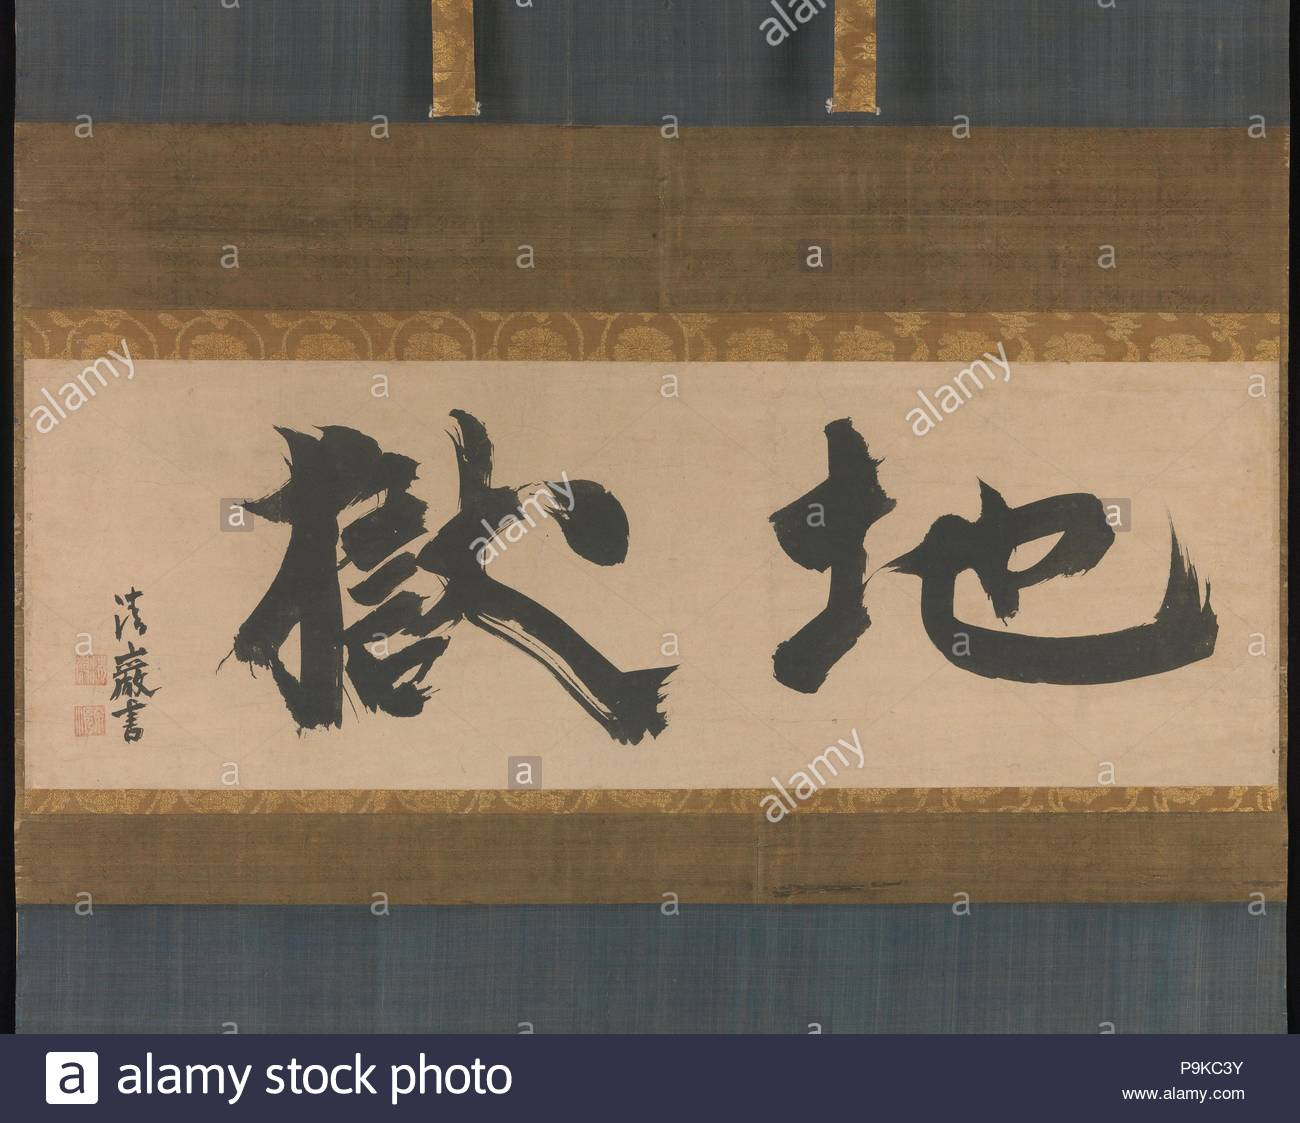 ???? ????, Hell, Edo period (1615–1868), 17th century, Japan, Hanging scroll; ink on paper, Image: 12 x 35 1/2 in. (30.5 x 90.2 cm), Calligraphy, Seigan Soi (Japanese, 1588–1661), This vigorous horizontal work is a striking example of the individualistic calligraphy favored in Rinzai Zen circles and among tea aesthetes. Seigan was abbot of Daitokuji in Kyoto and an active member of Kyoto's literary and tea circles. - Stock Image